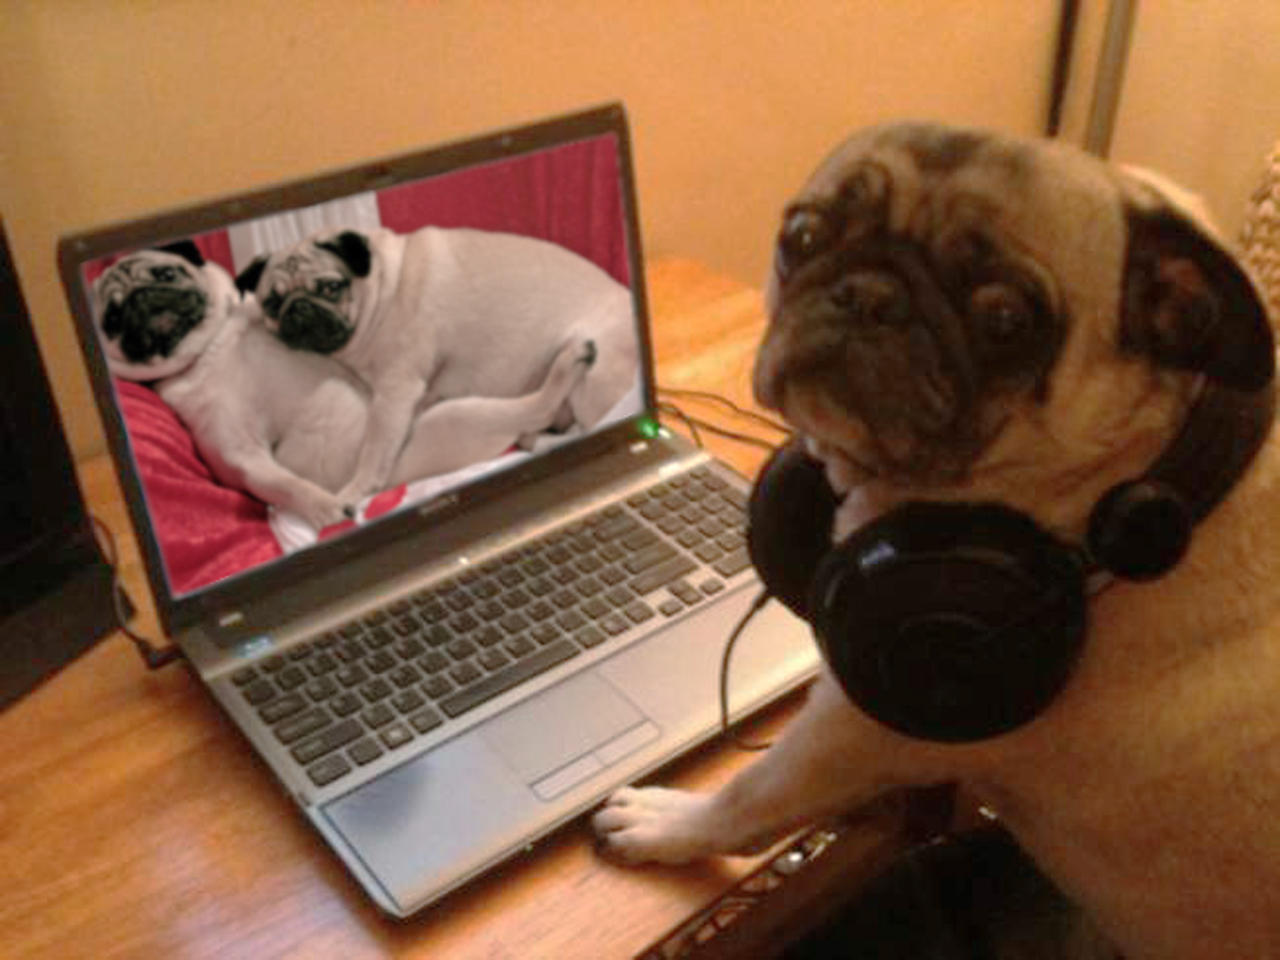 http://simhq.com/forum/files/usergals/2012/05/full-6351-34150-pug.jpg